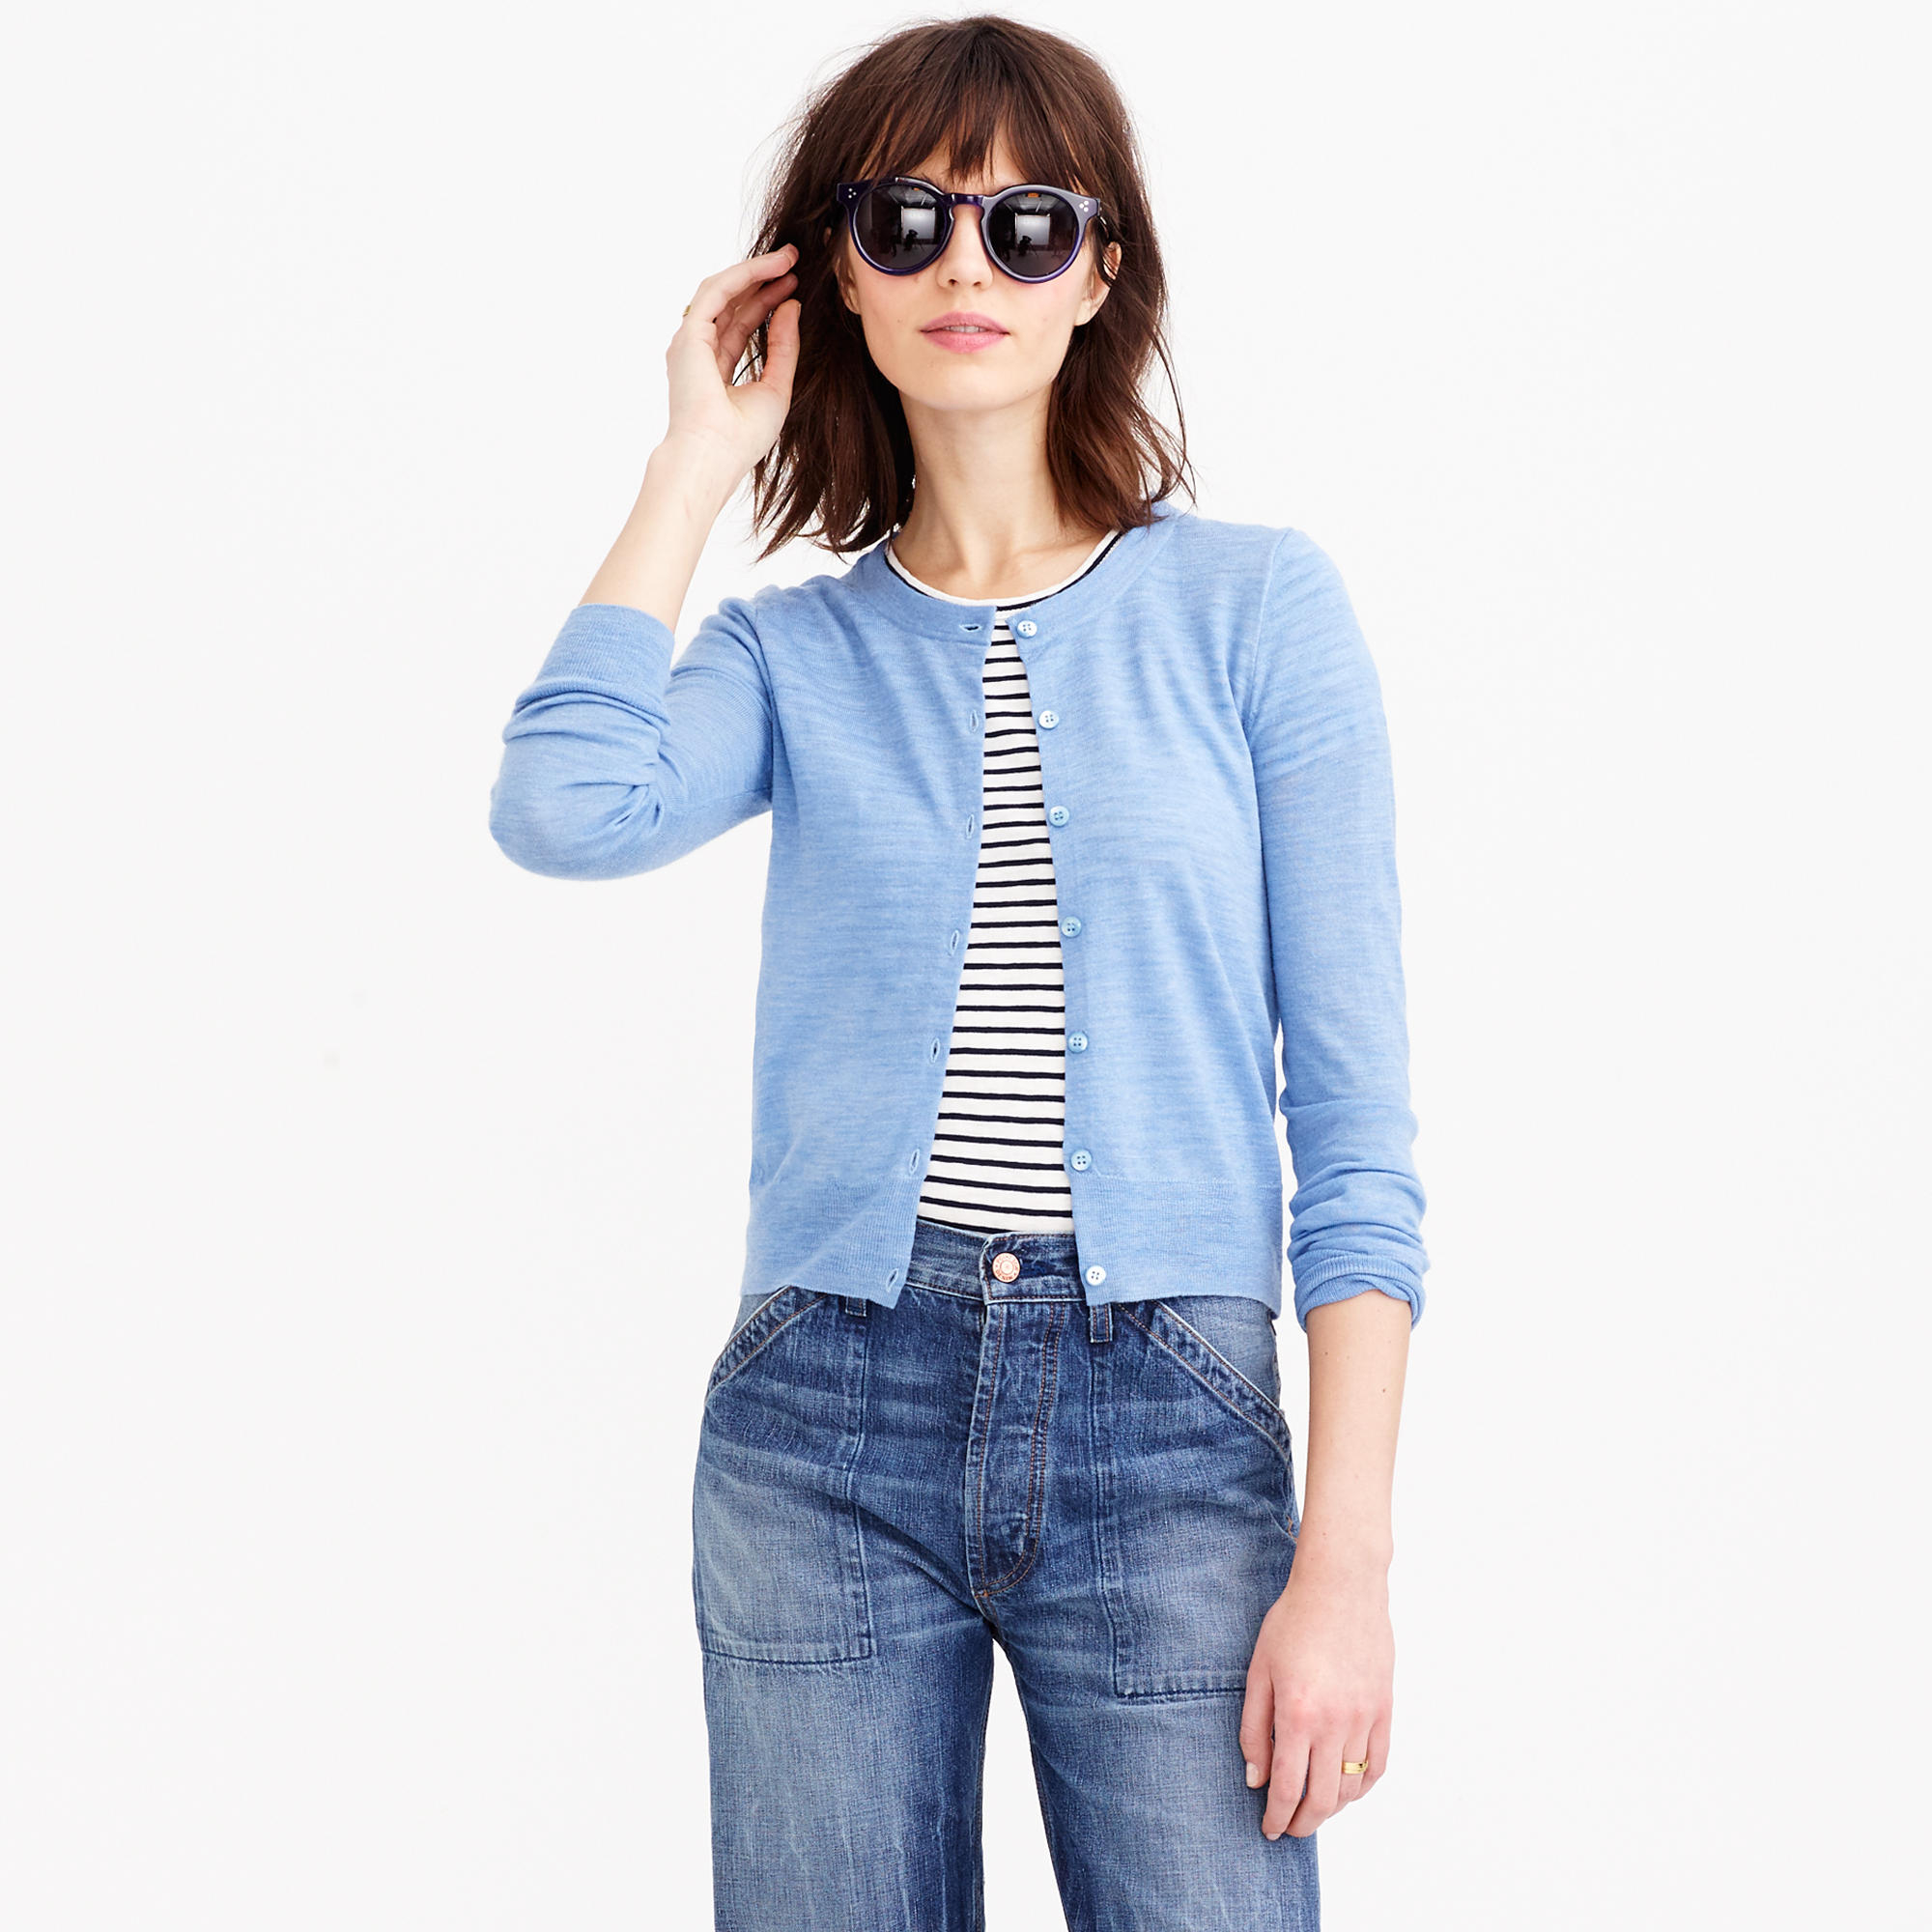 J Crew Tilly Sweater Review 89